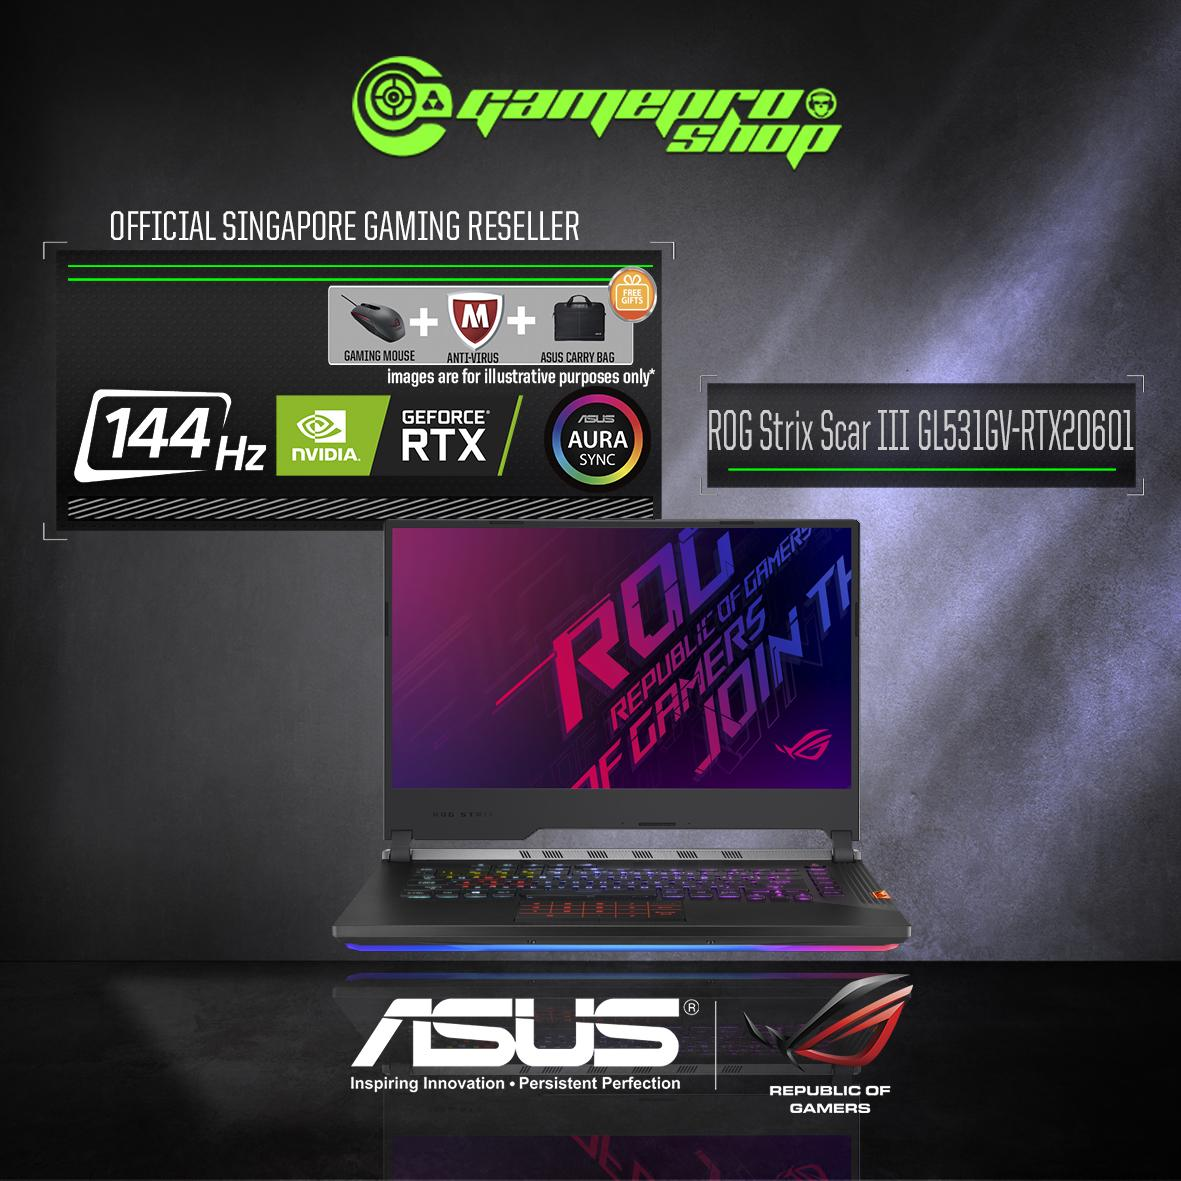 9th Gen ASUS ROG Strix SCAR III GL531GV - RTX 2060 ( I7-9750H / 16GB / 512GB SSD ) 15.6 WITH 144Hz GAMING LAPTOP *COMEX PROMO*